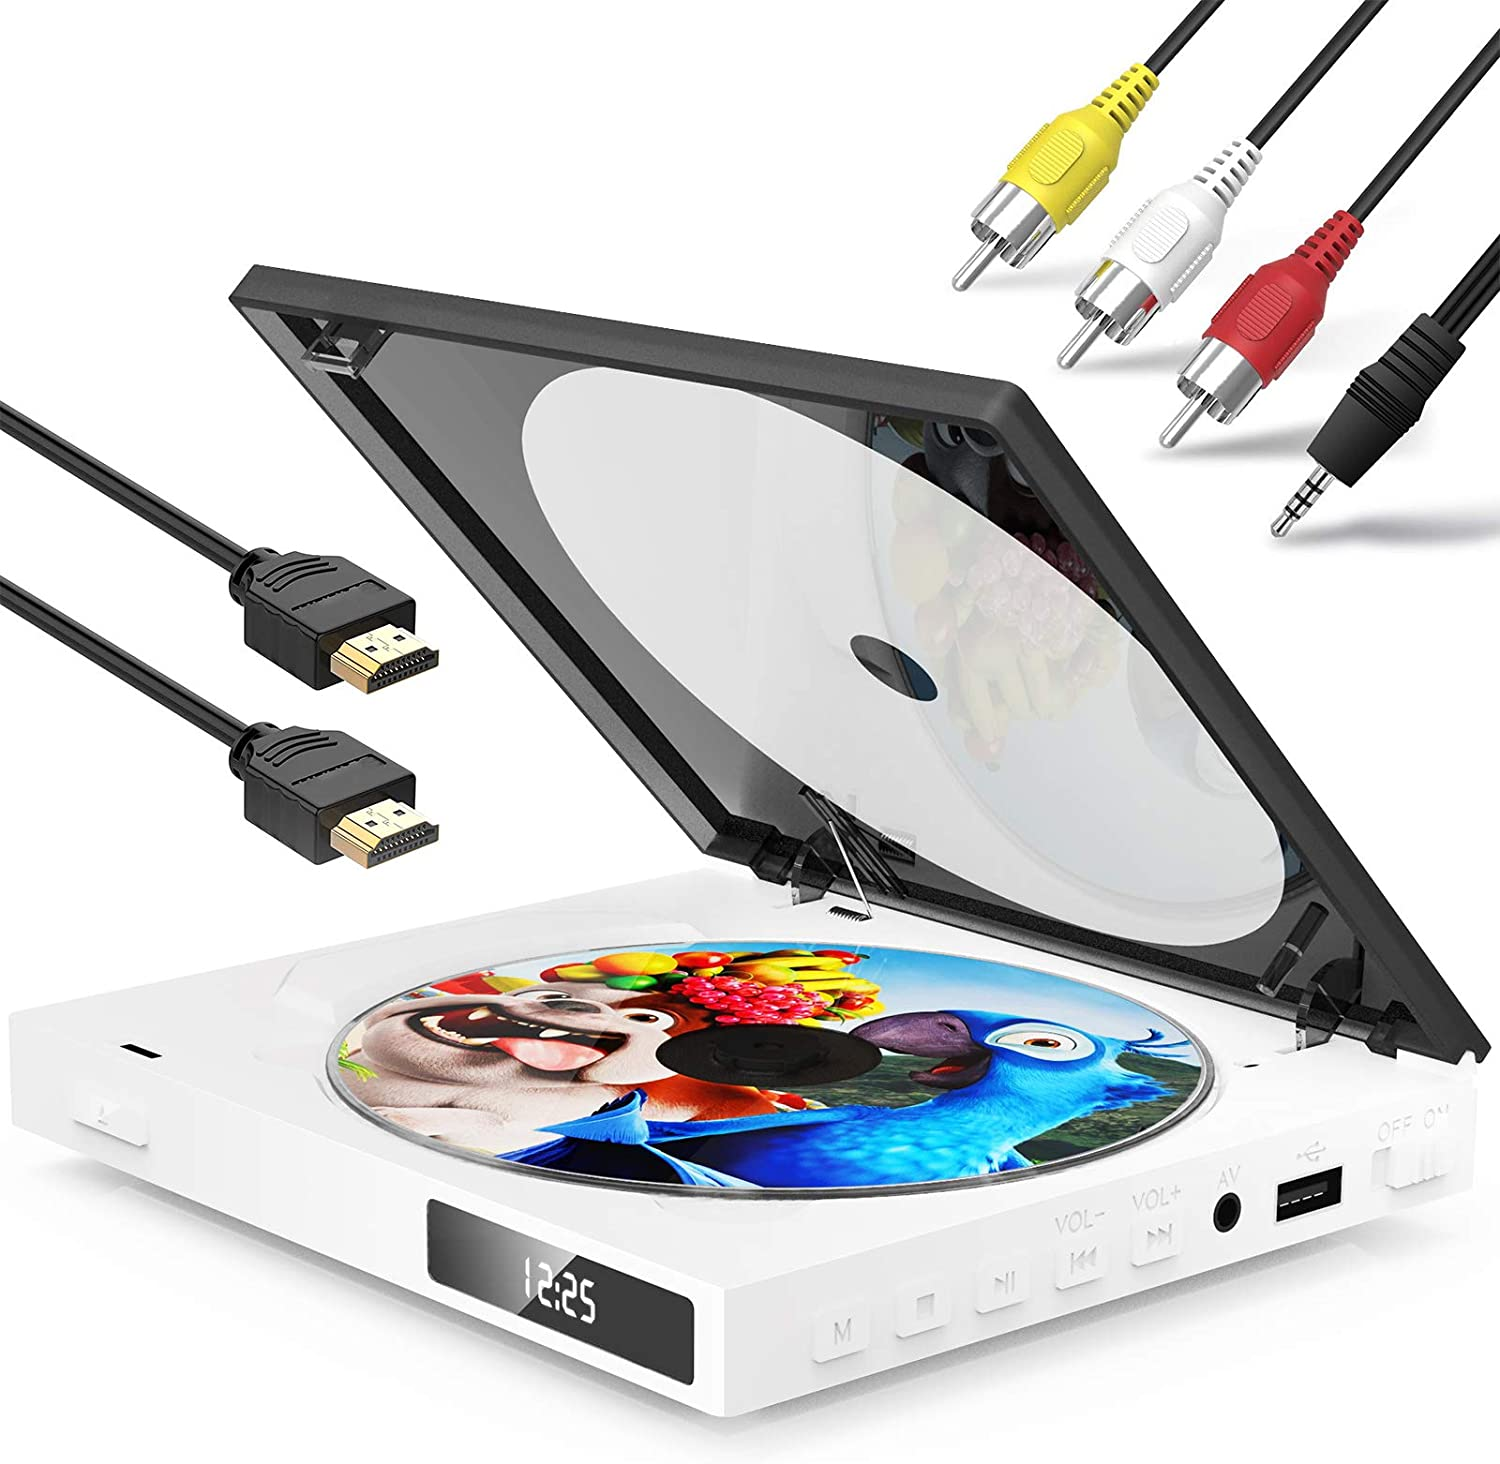 Geoyeao Mini HD DVD Player with HDMI AV Output Built-in Speaker Palm Size DVD CD/Disc Player All Reigion Free Remote,HDMI/AV Cables Included